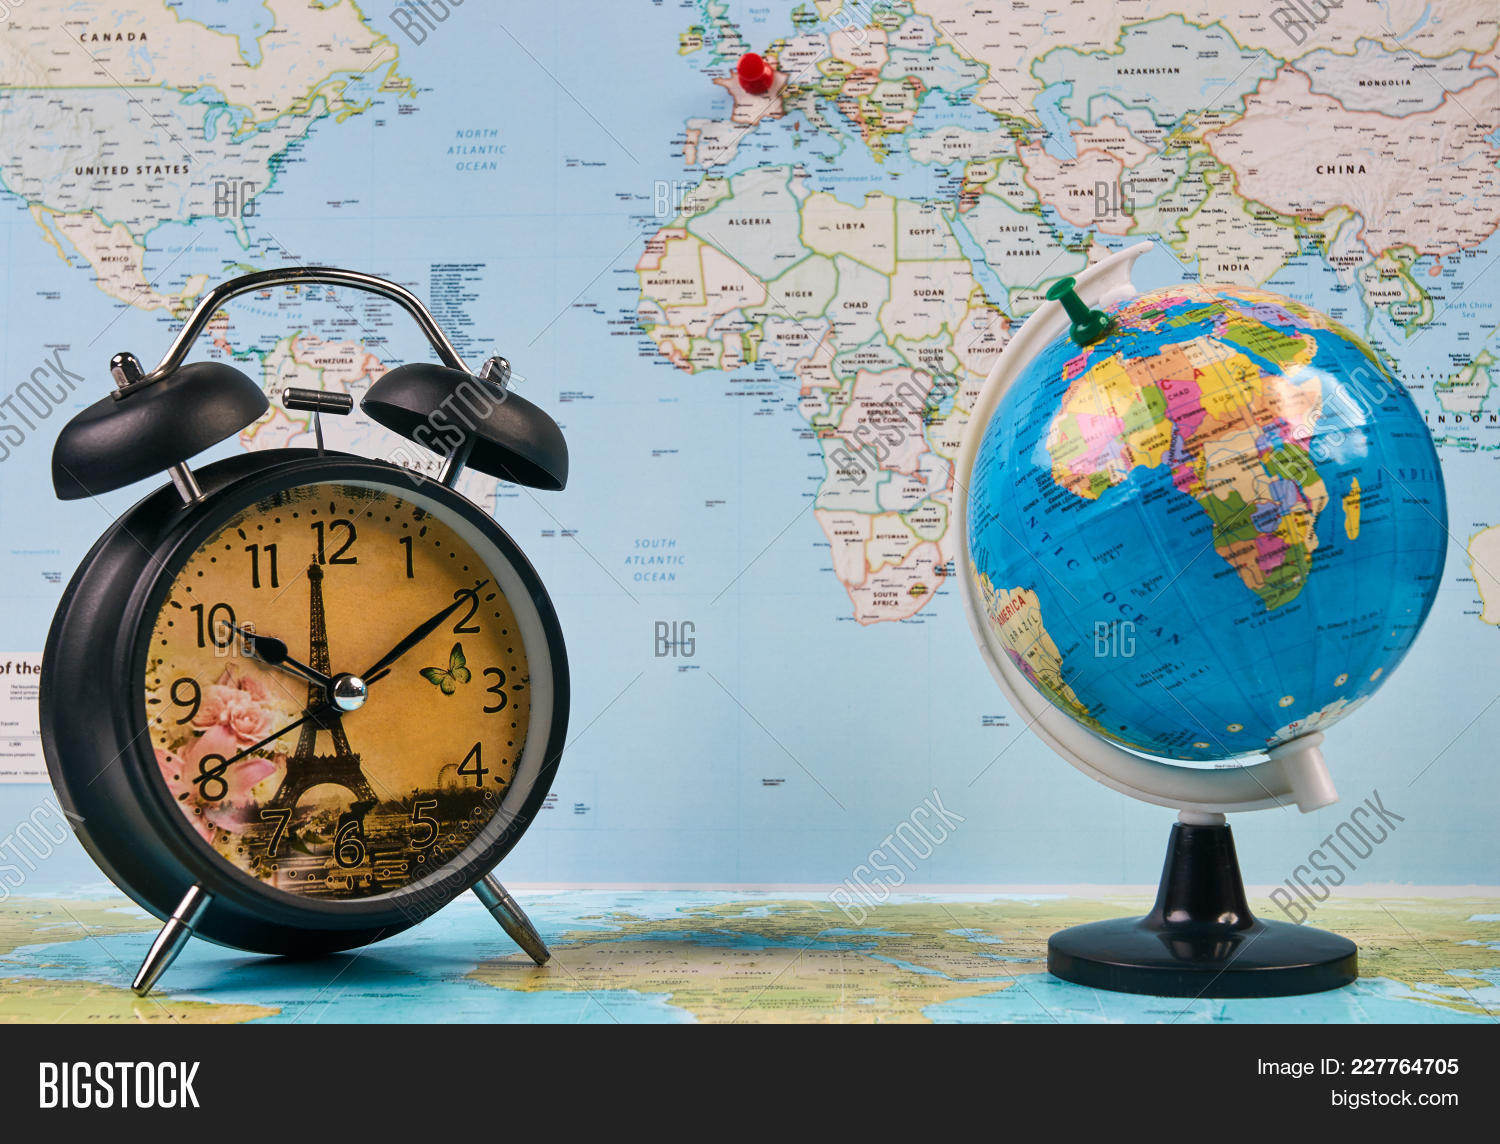 Planing travel france image photo free trial bigstock planing for travel to france paris with worldmap globe and alarm clock travel time in gumiabroncs Choice Image